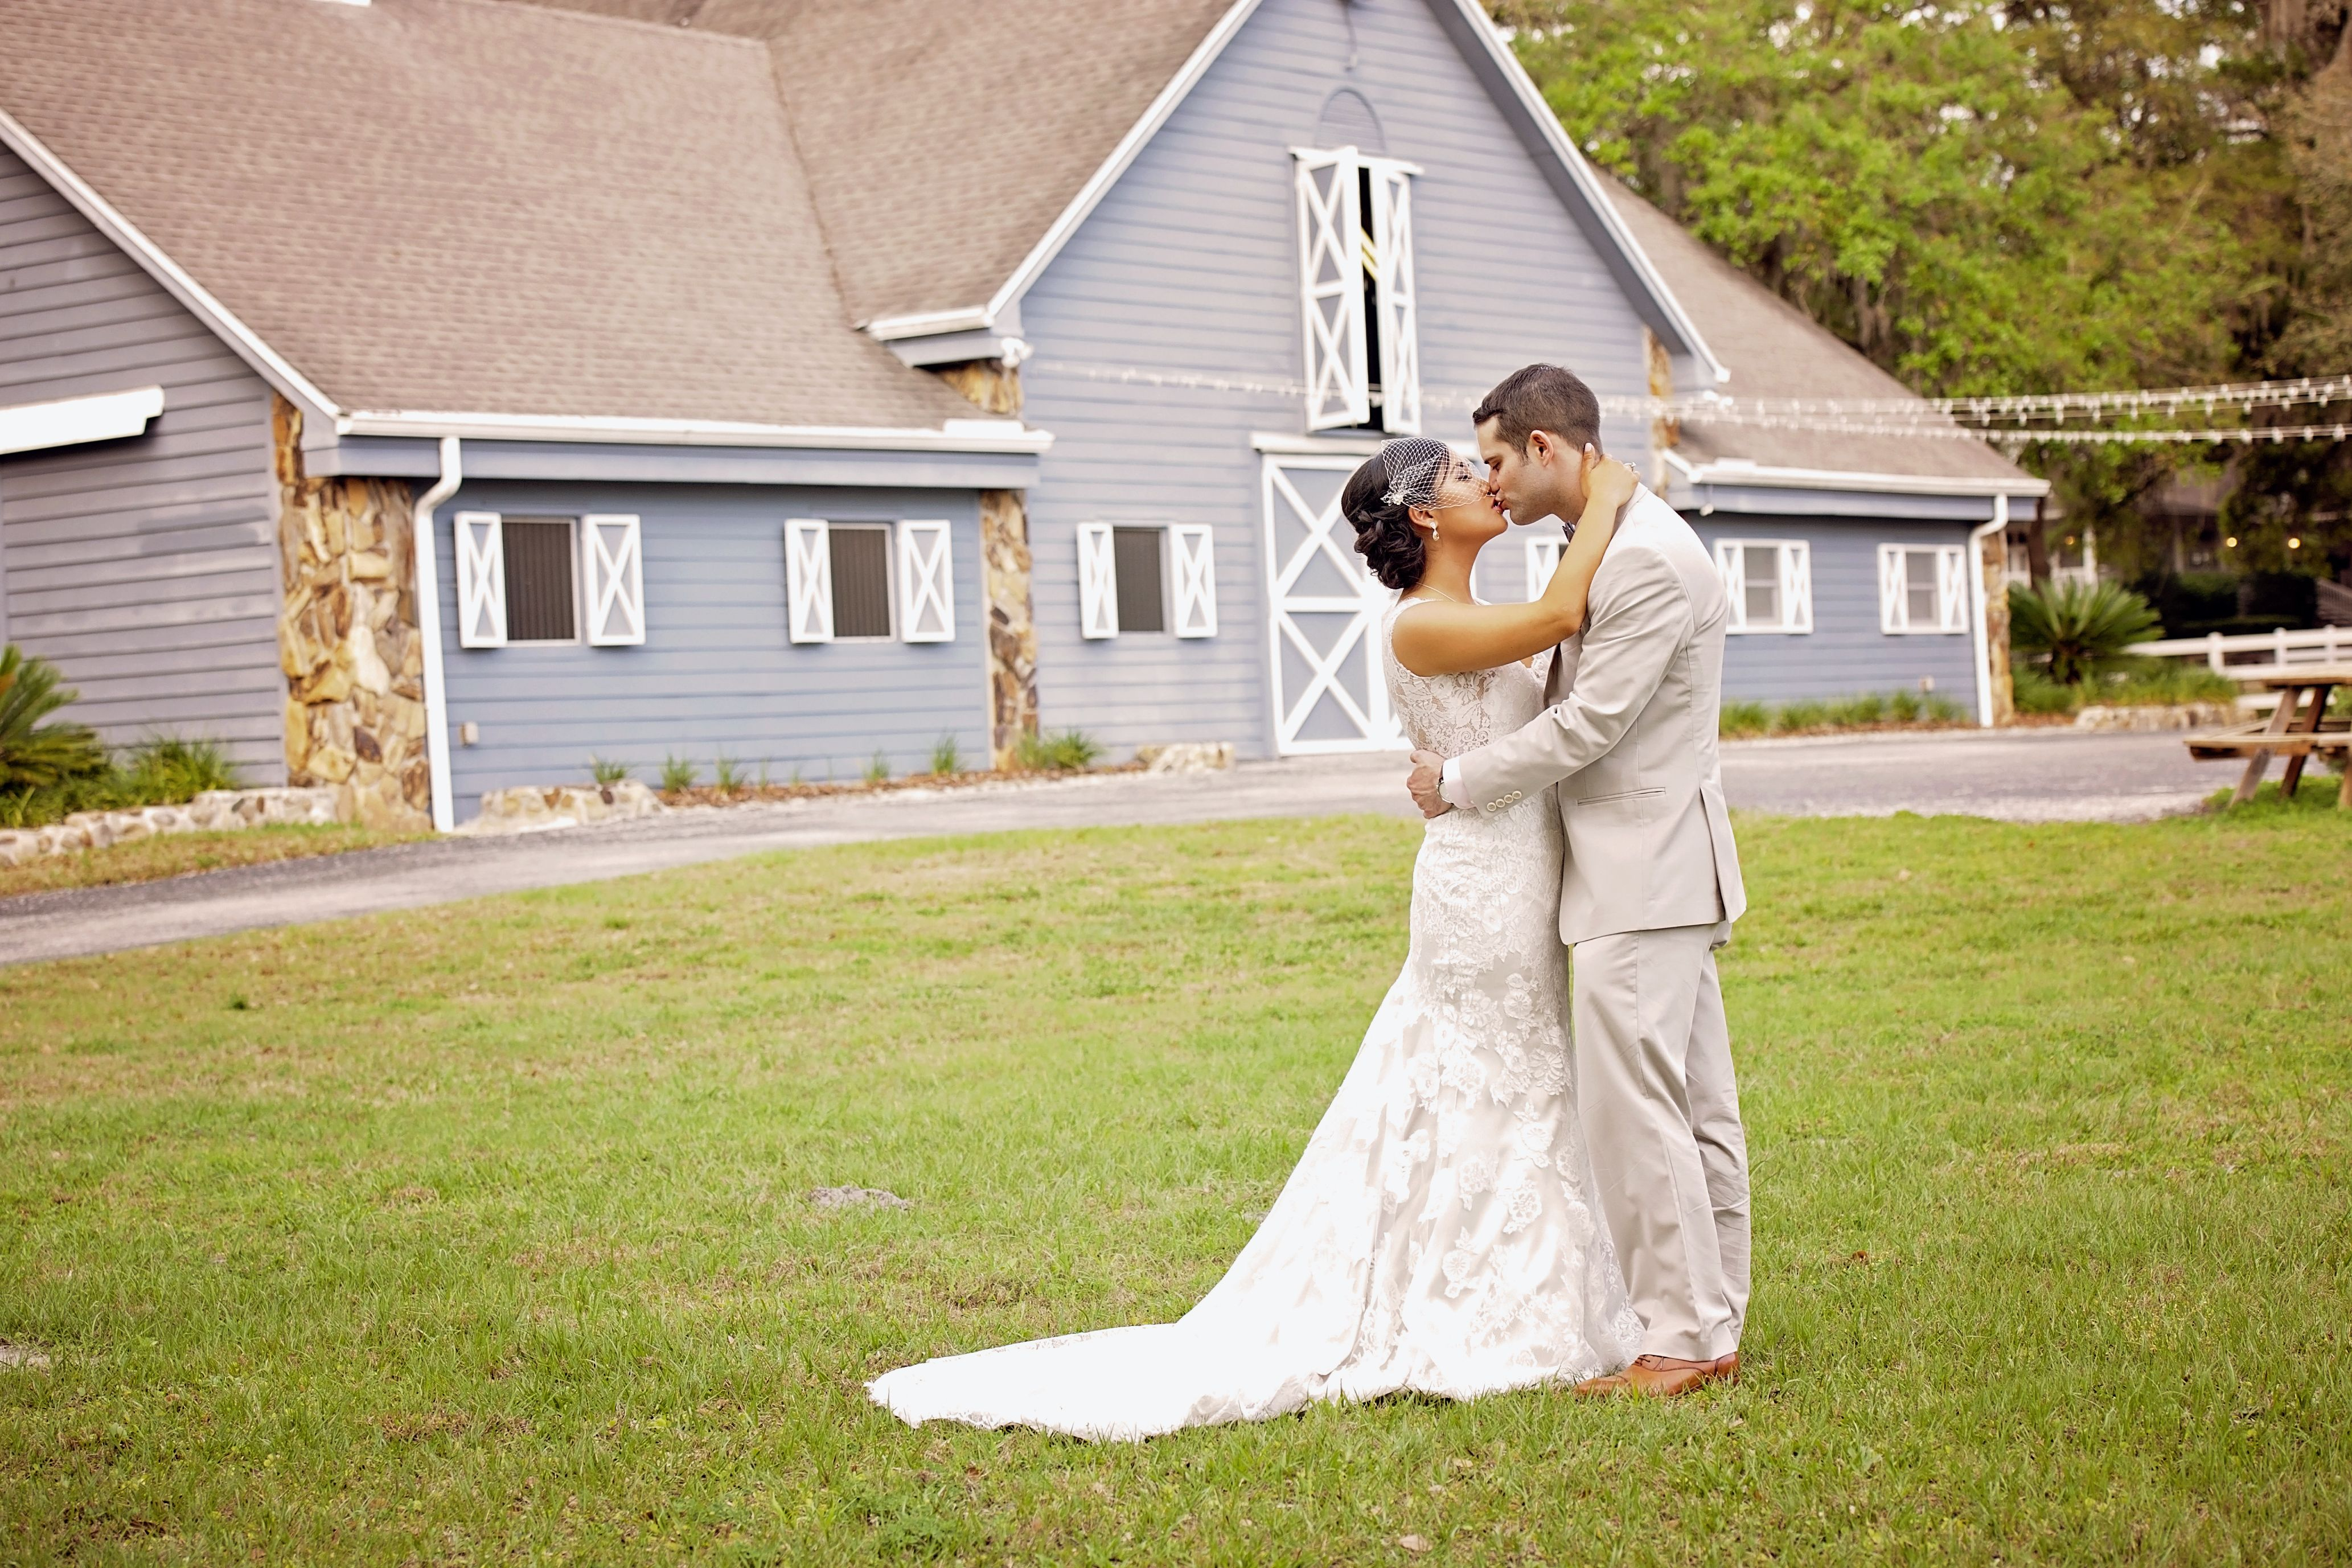 Wedding dresses lakeland fl  A Rustic Wedding at The Lange Farm in Dade City Florida  I can